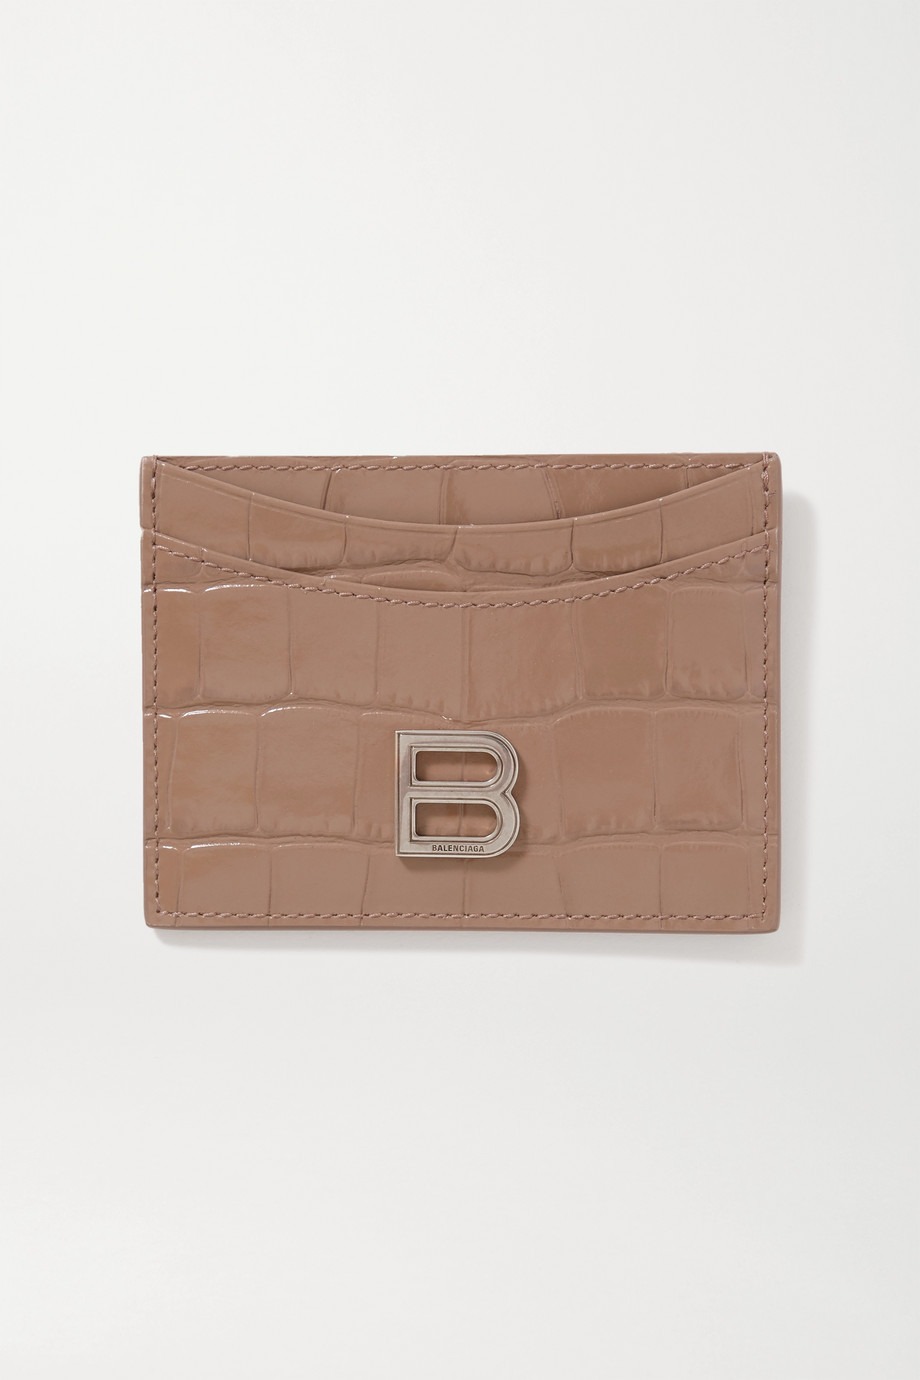 BALENCIAGA Hourglass croc-effect leather cardholder